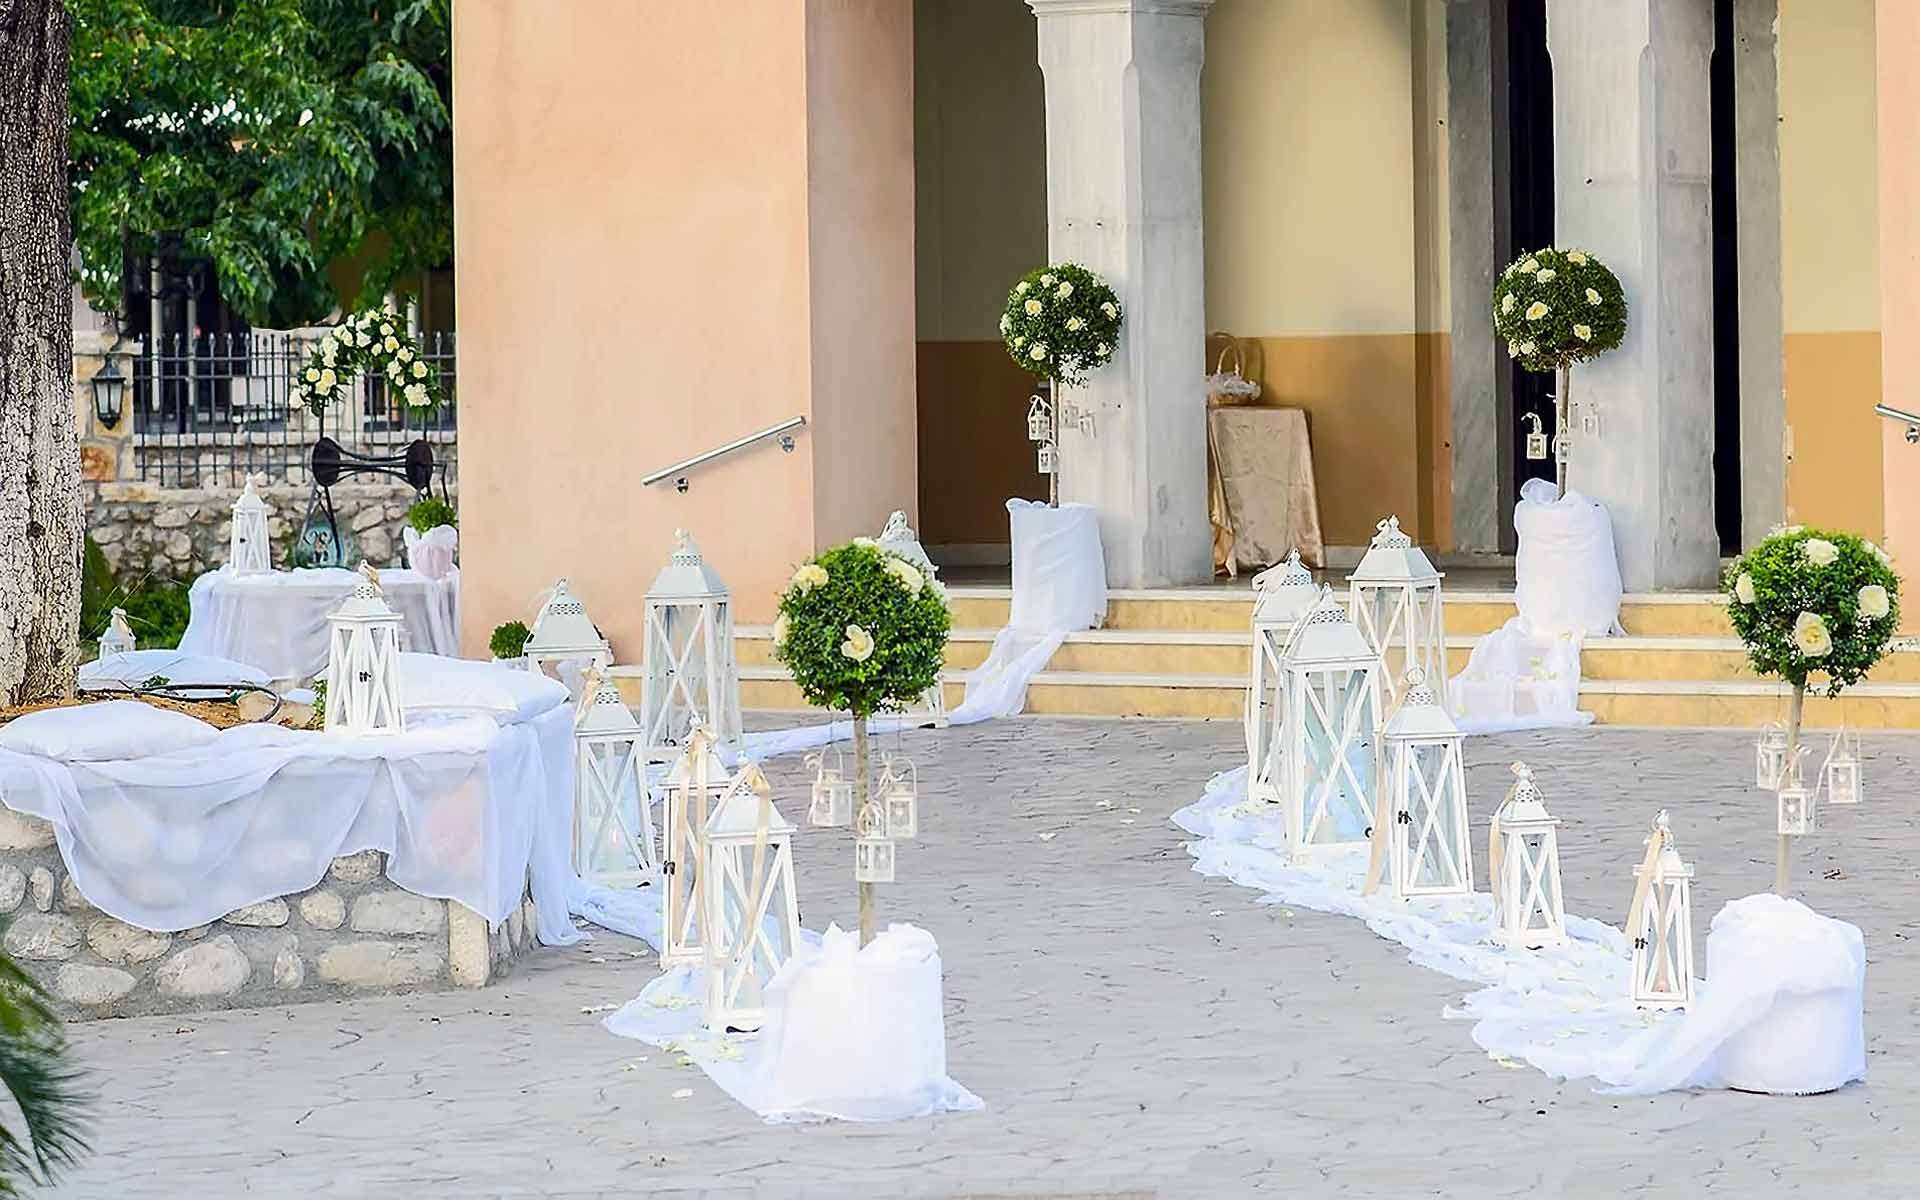 Romantic-outdoor-wedding-decor-inspiration-by-Diamond-Events-Wedding-Event-planning-services